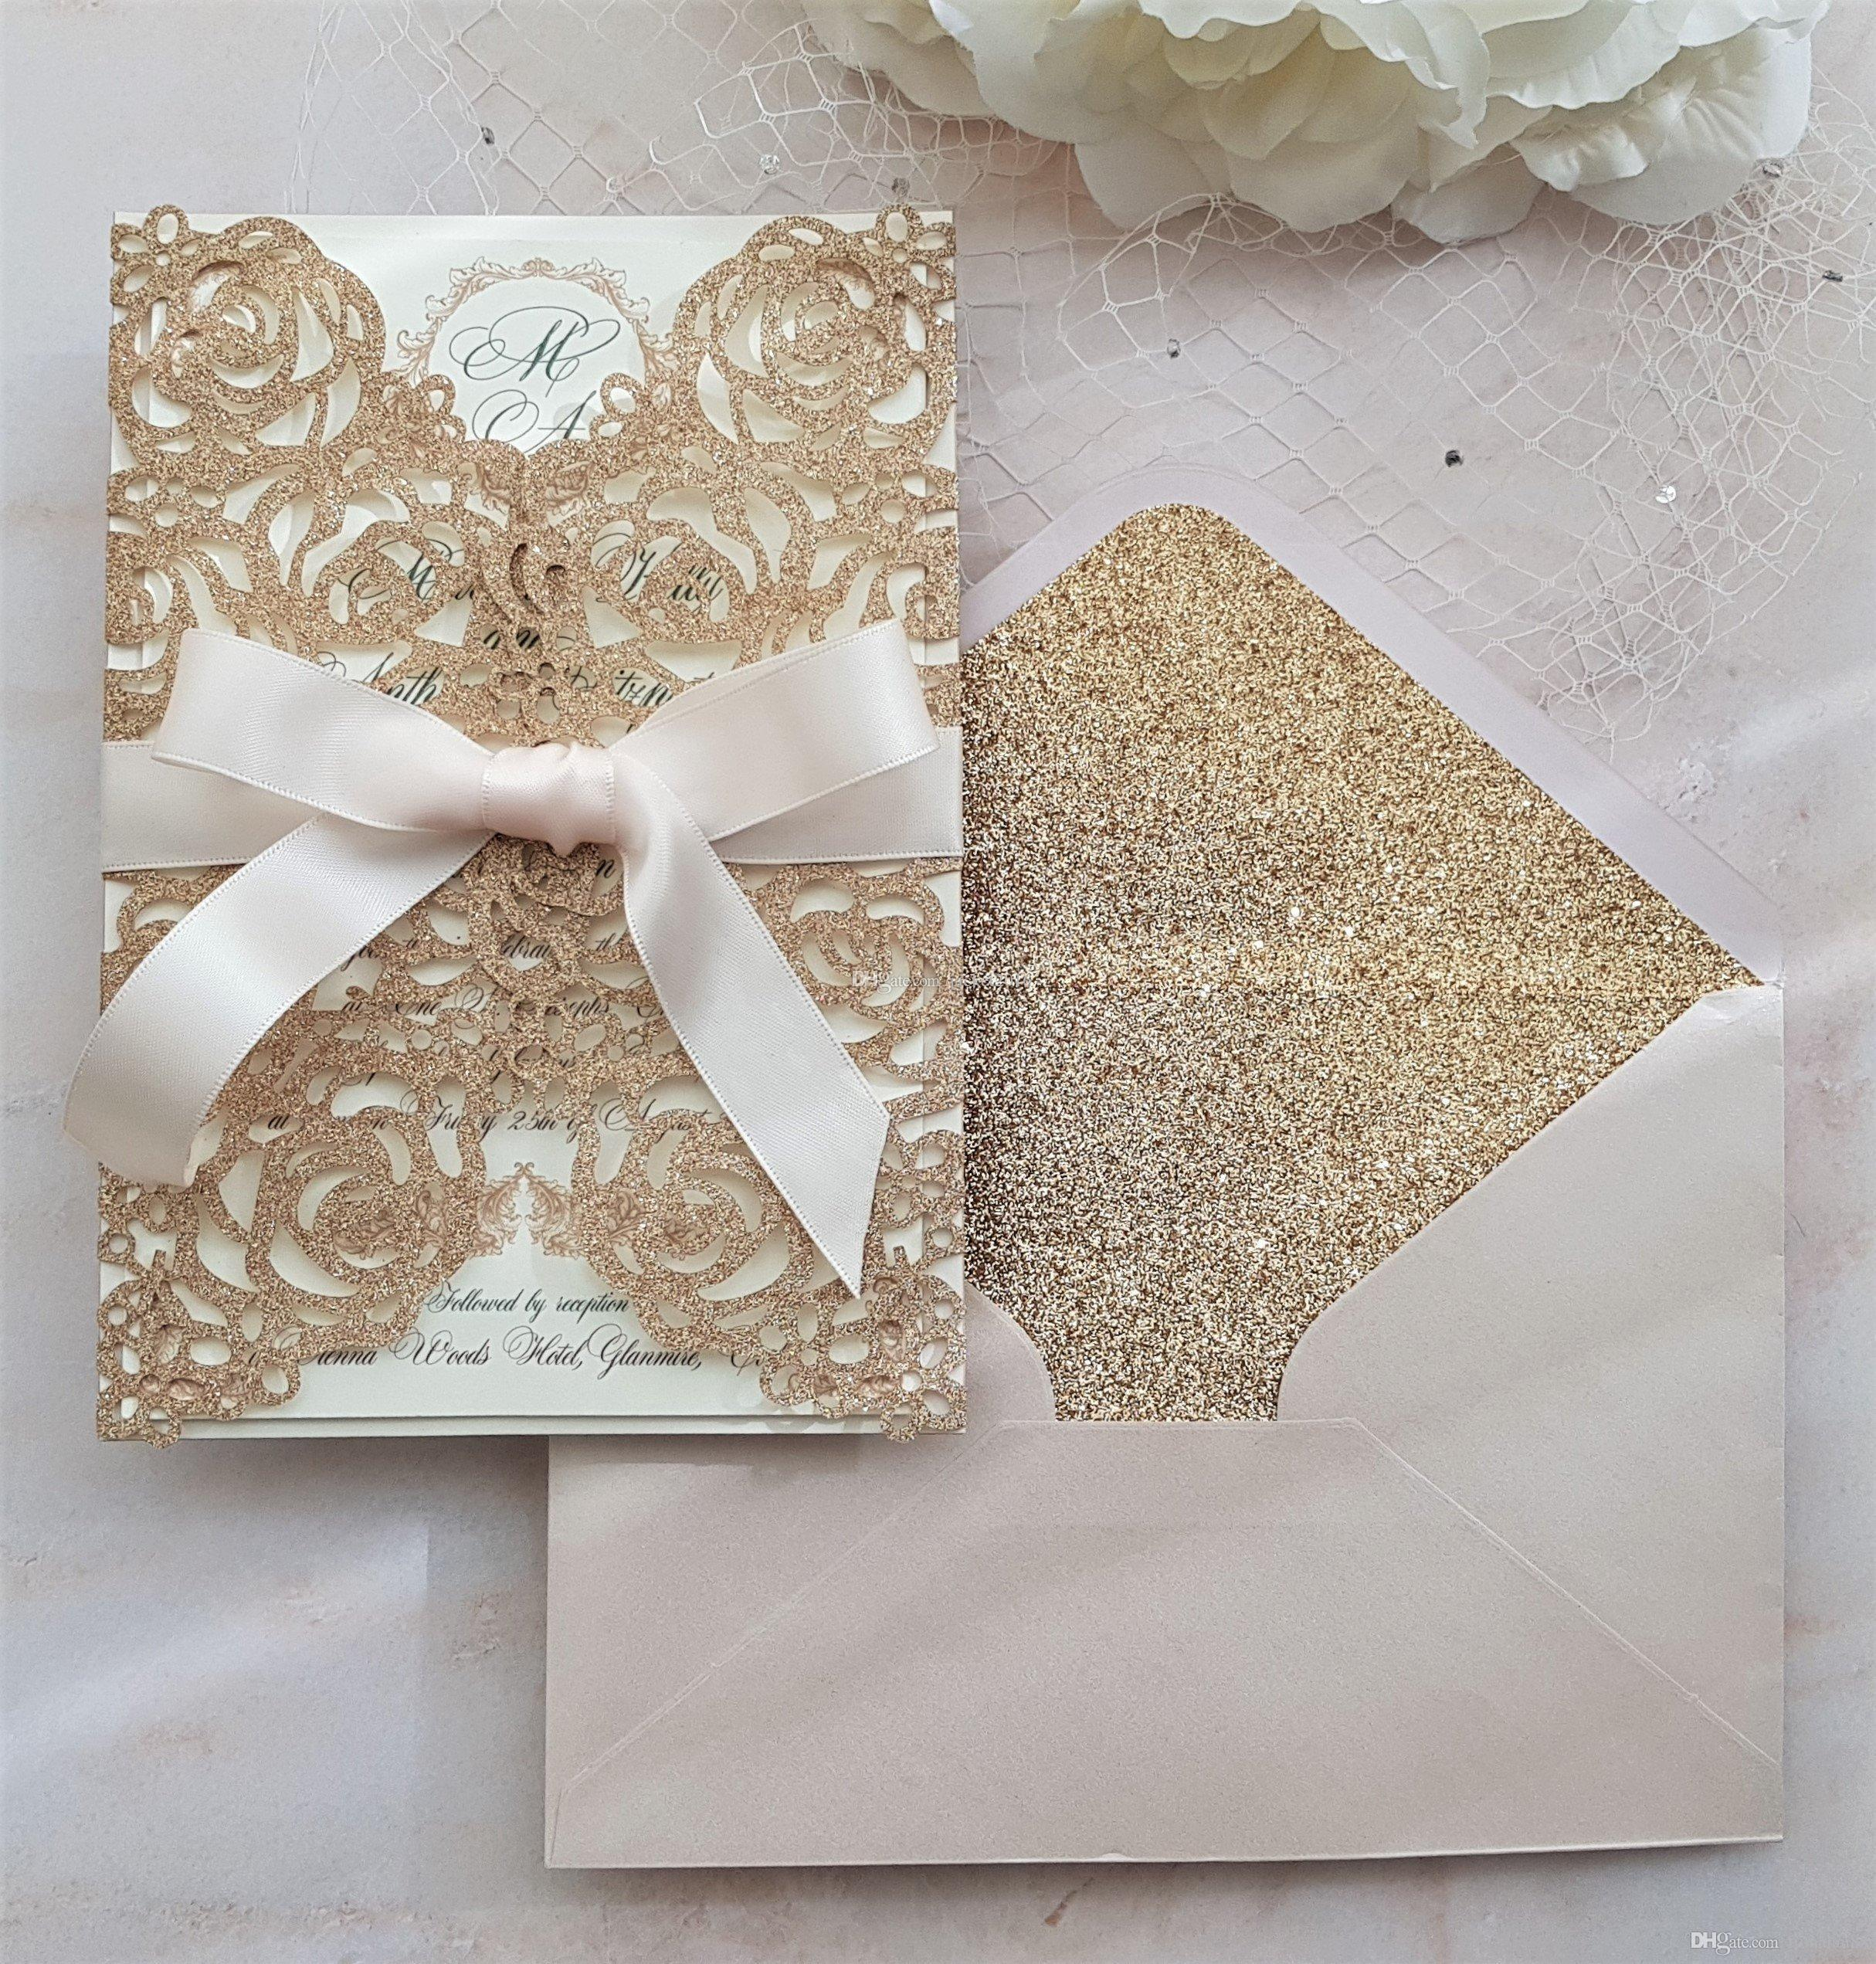 Wedding Invitation Packages.Rose Gold Glitter Laser Cut Wedding Invitation With Bow And Glittery Envelope Laser Cut Invites For Wedding Party Graduation